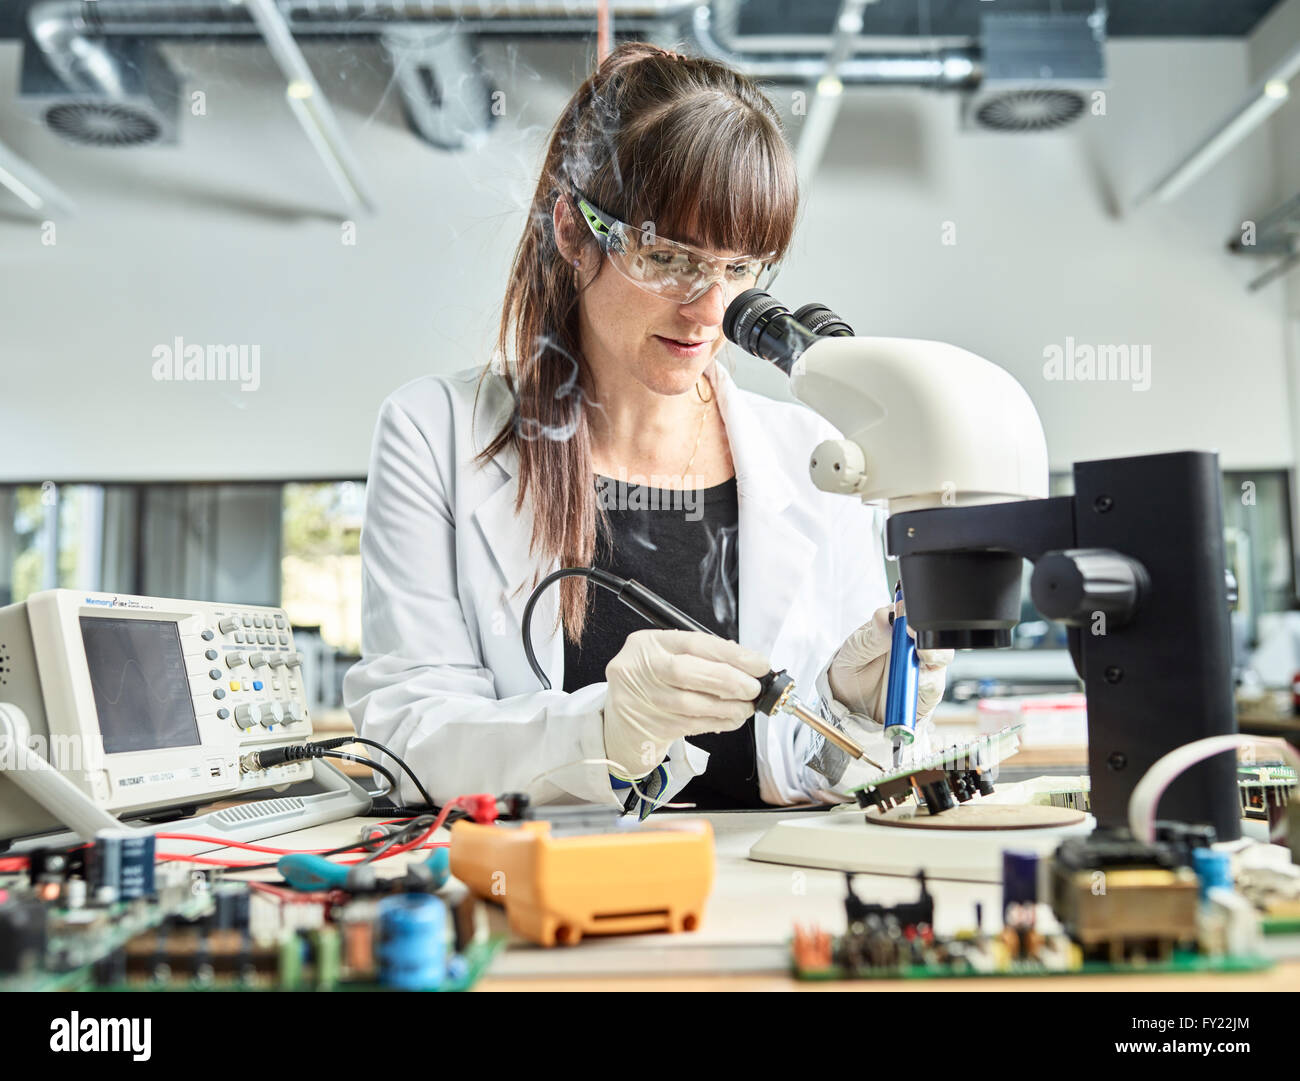 Female technician, 20-25 years, with a white lab coat, soldering a circuit board in an electronics laboratory, Wattens - Stock Image